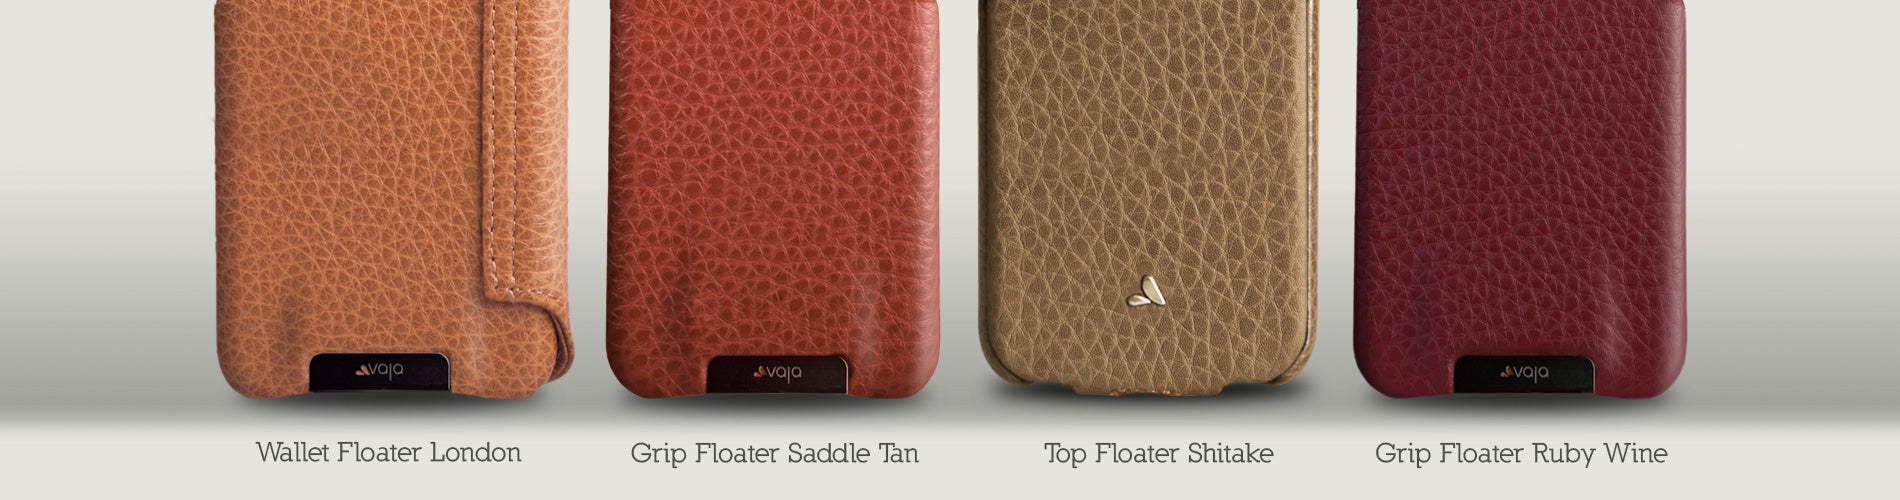 Floater Leather Chart 1